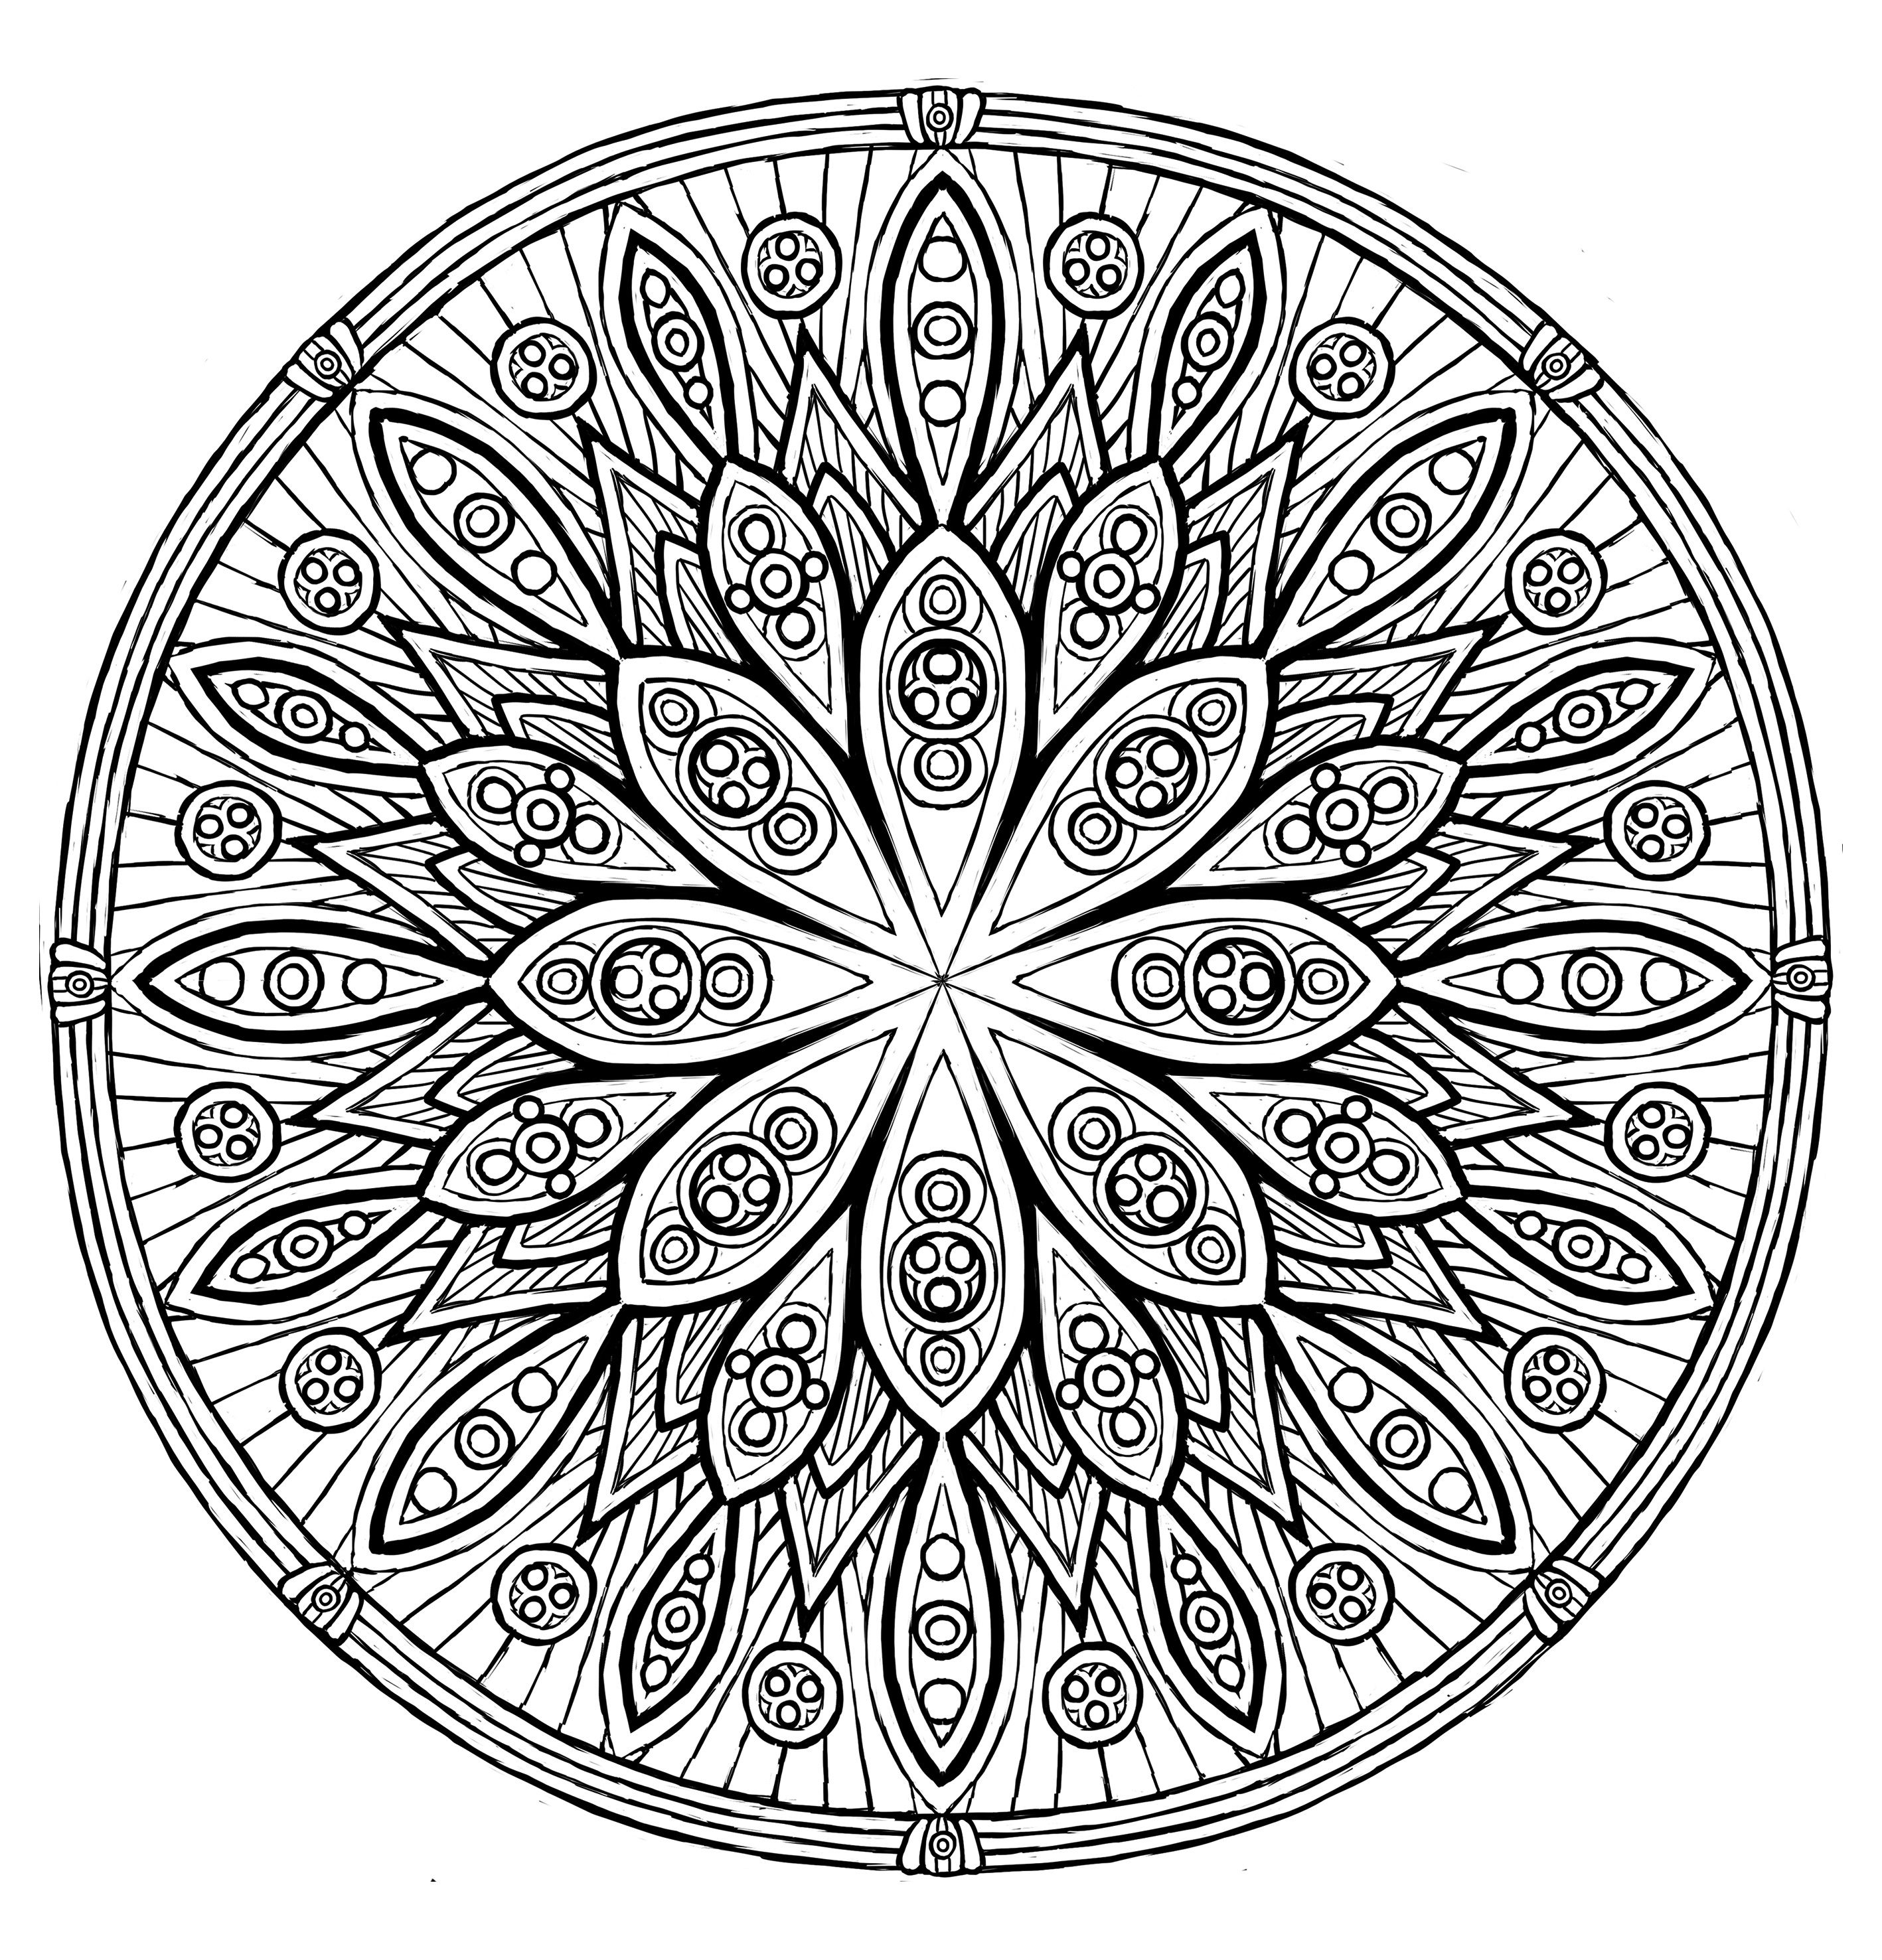 Free Colouring Pages Free Downloads Homemaker Magazine Free Coloring Pages Colouring Pages Mandala Coloring Pages